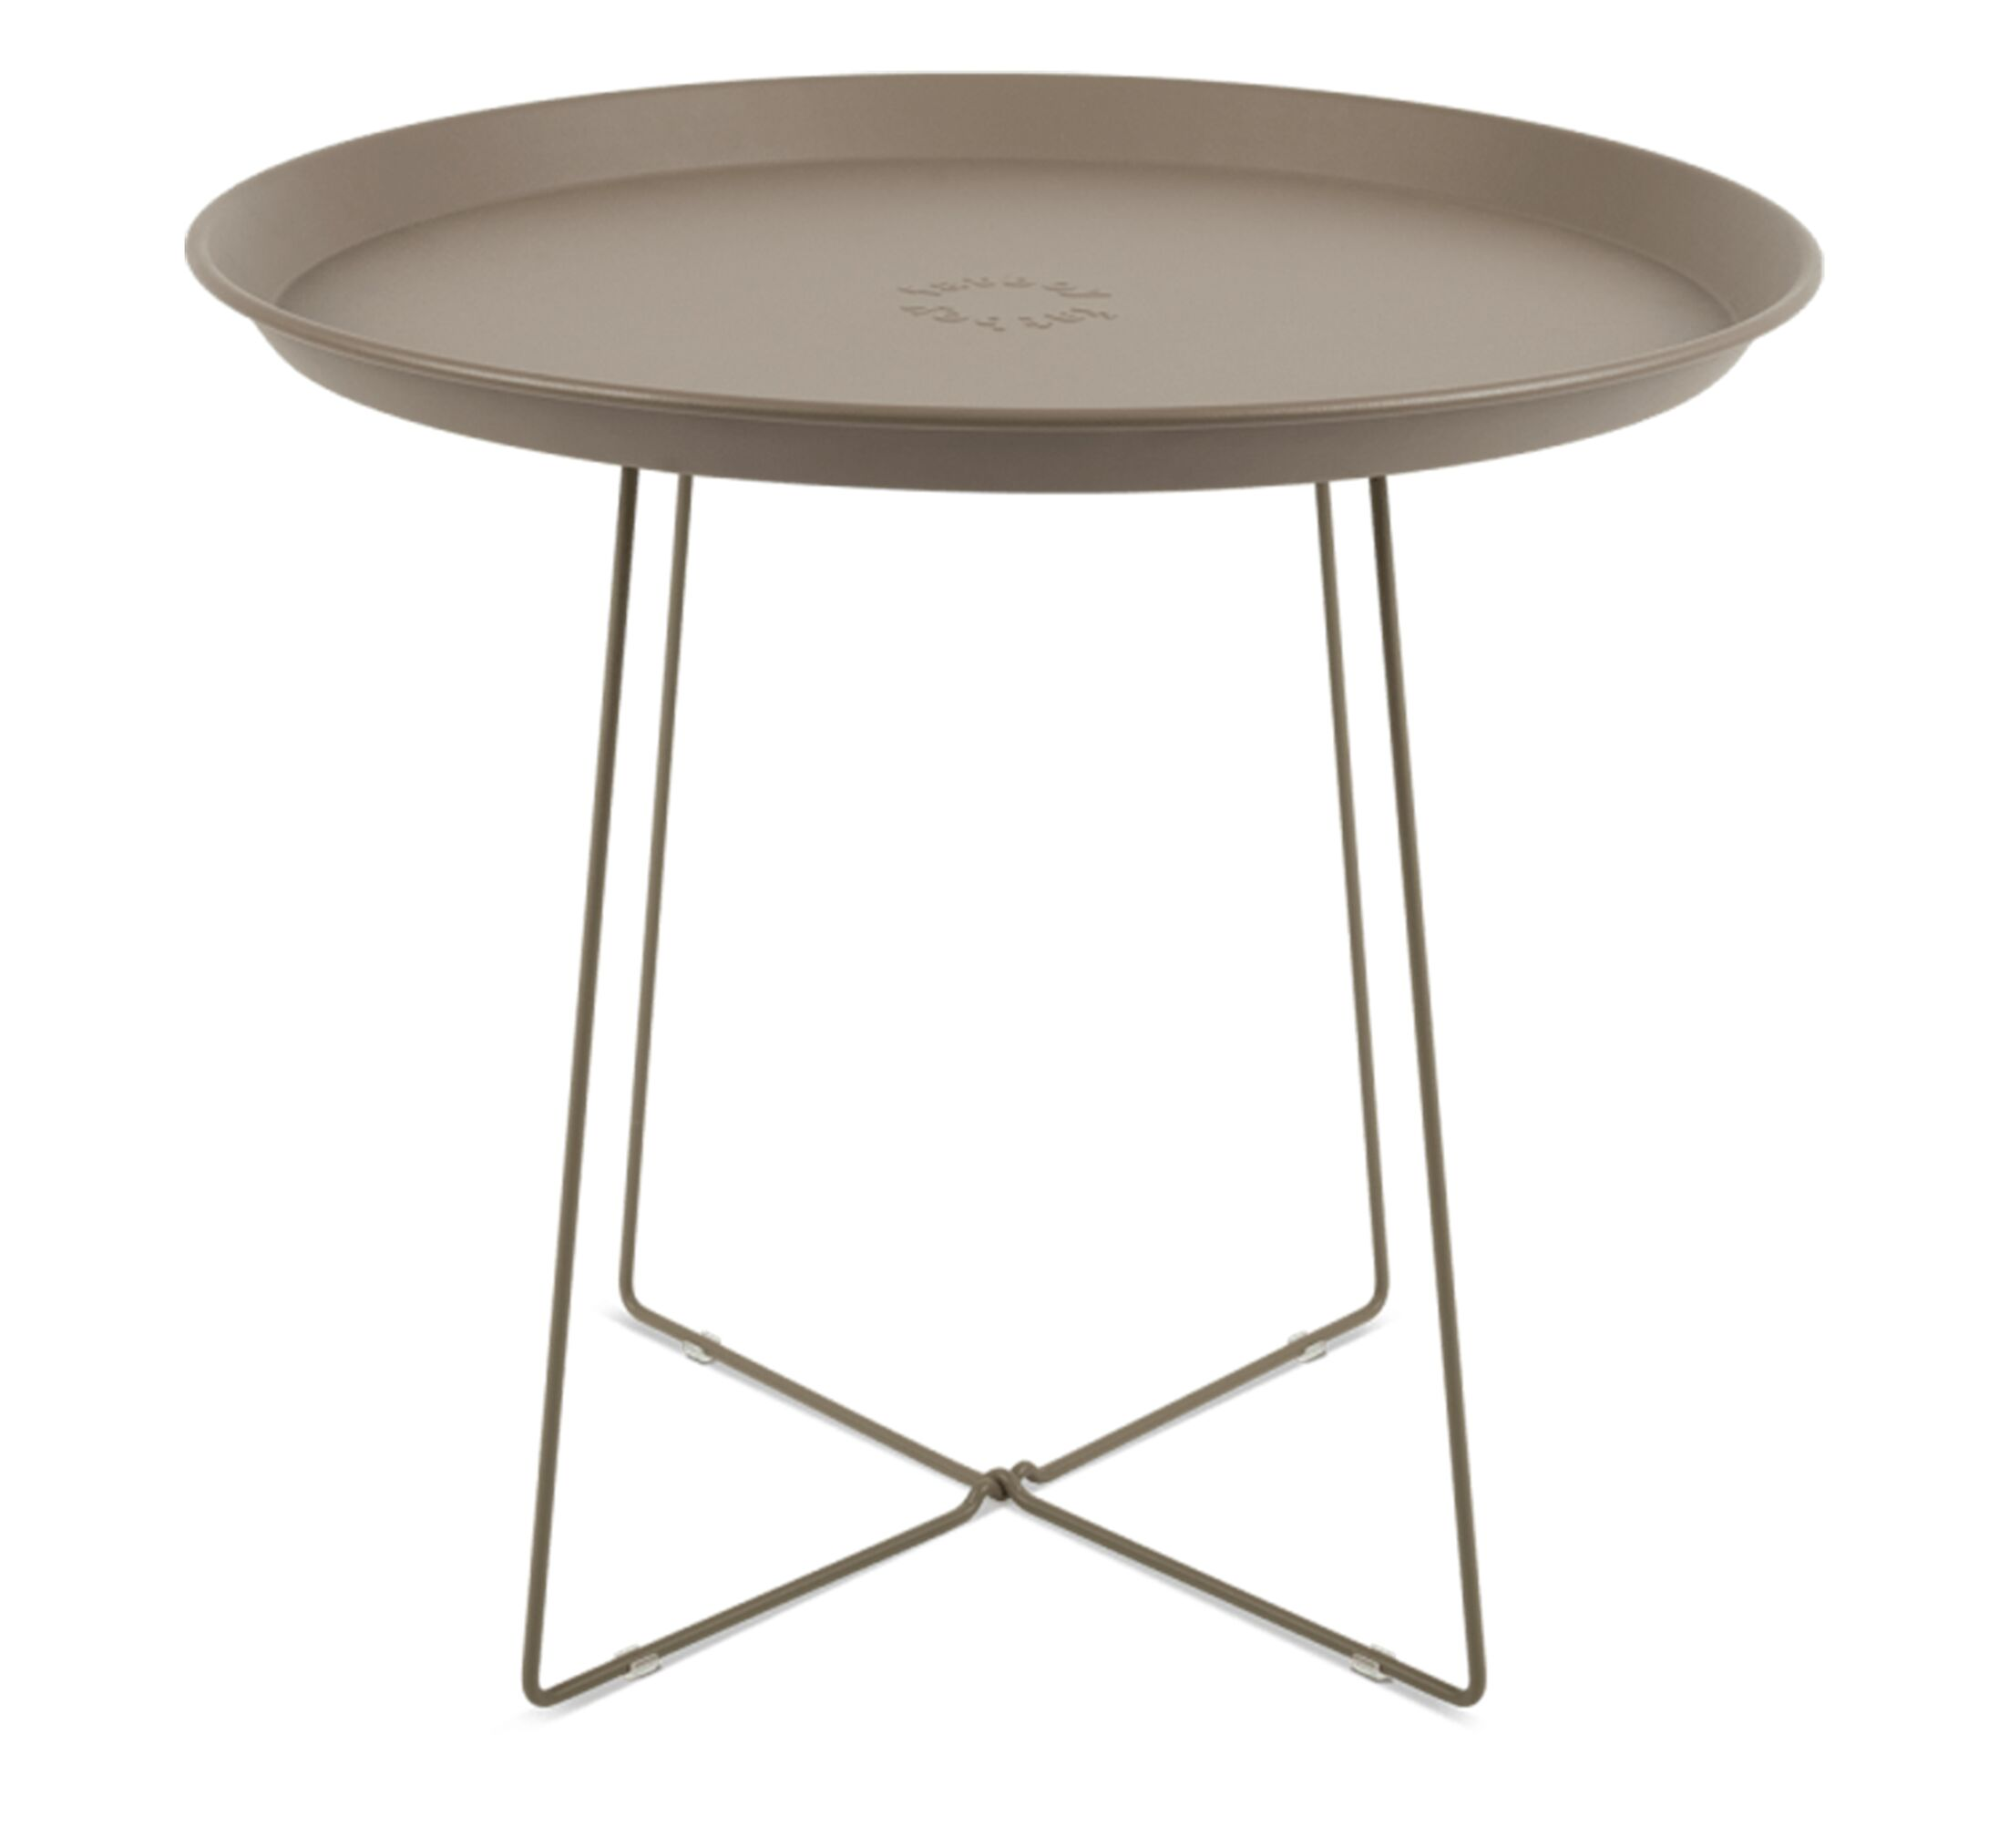 Plat-o Tray Table Color: Taupe